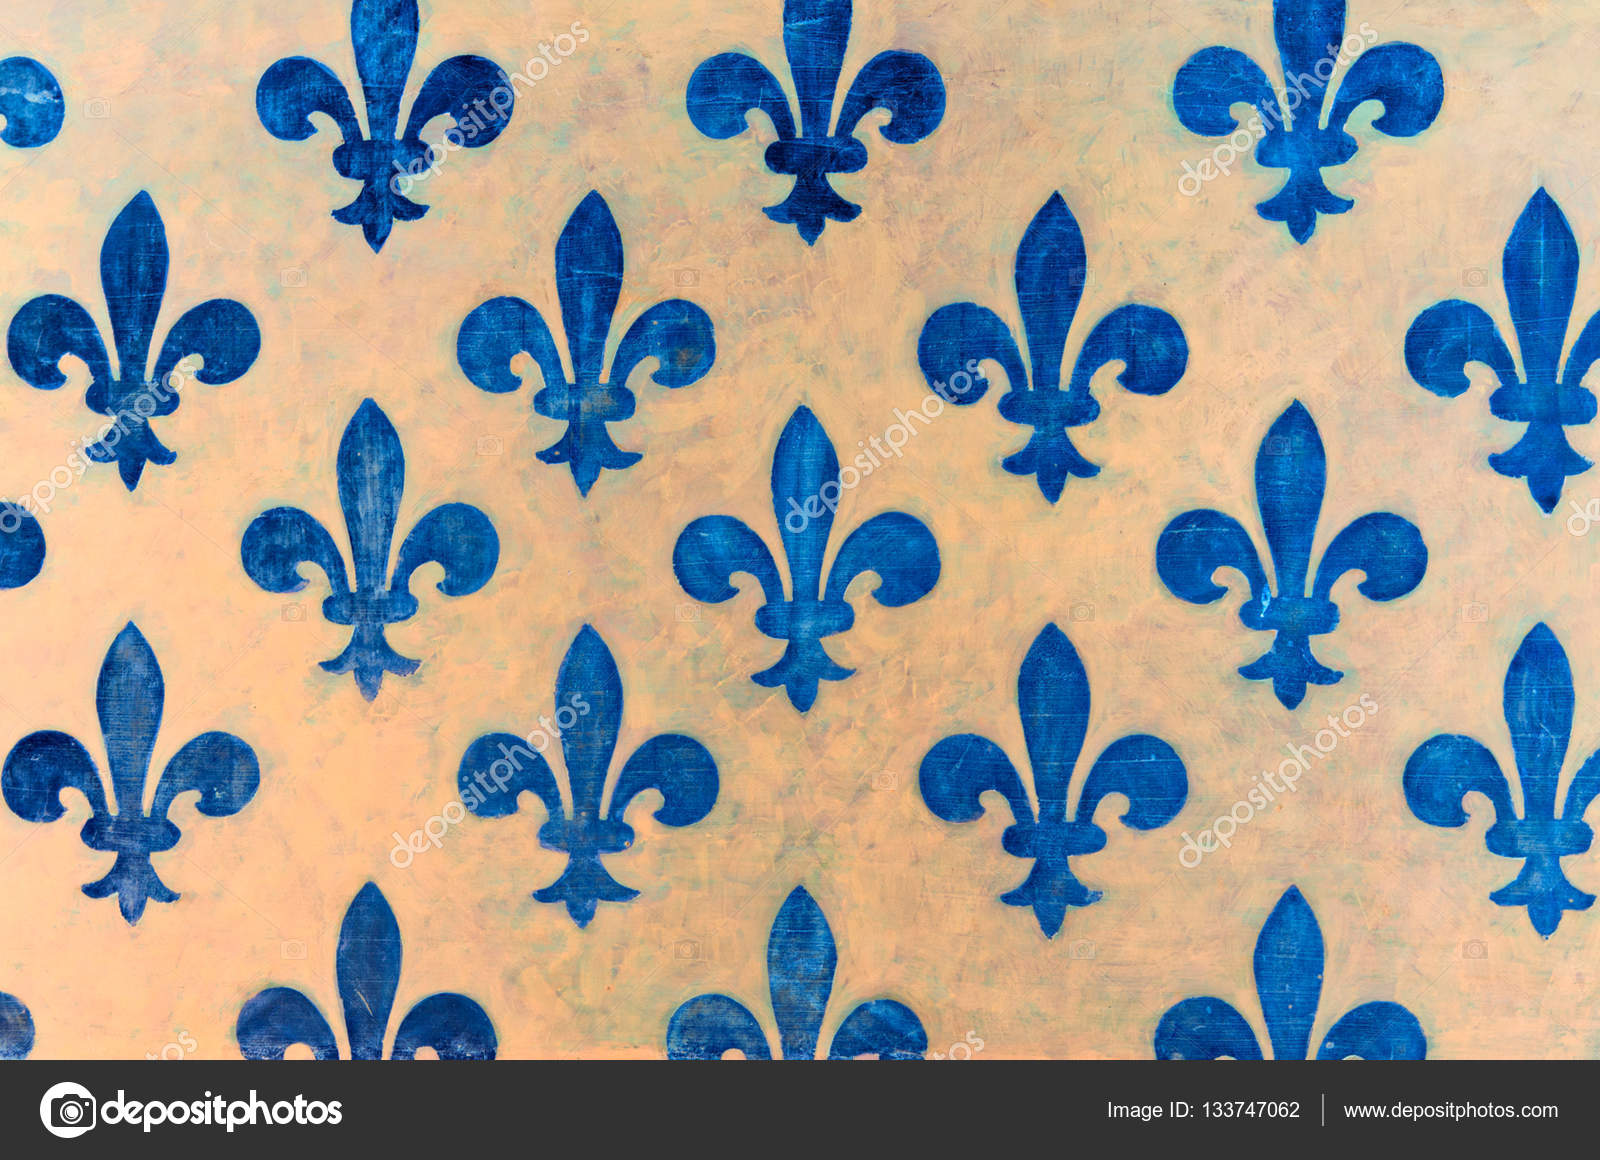 blue fleur de lis wallpaper fleur de lis stock photo. Black Bedroom Furniture Sets. Home Design Ideas